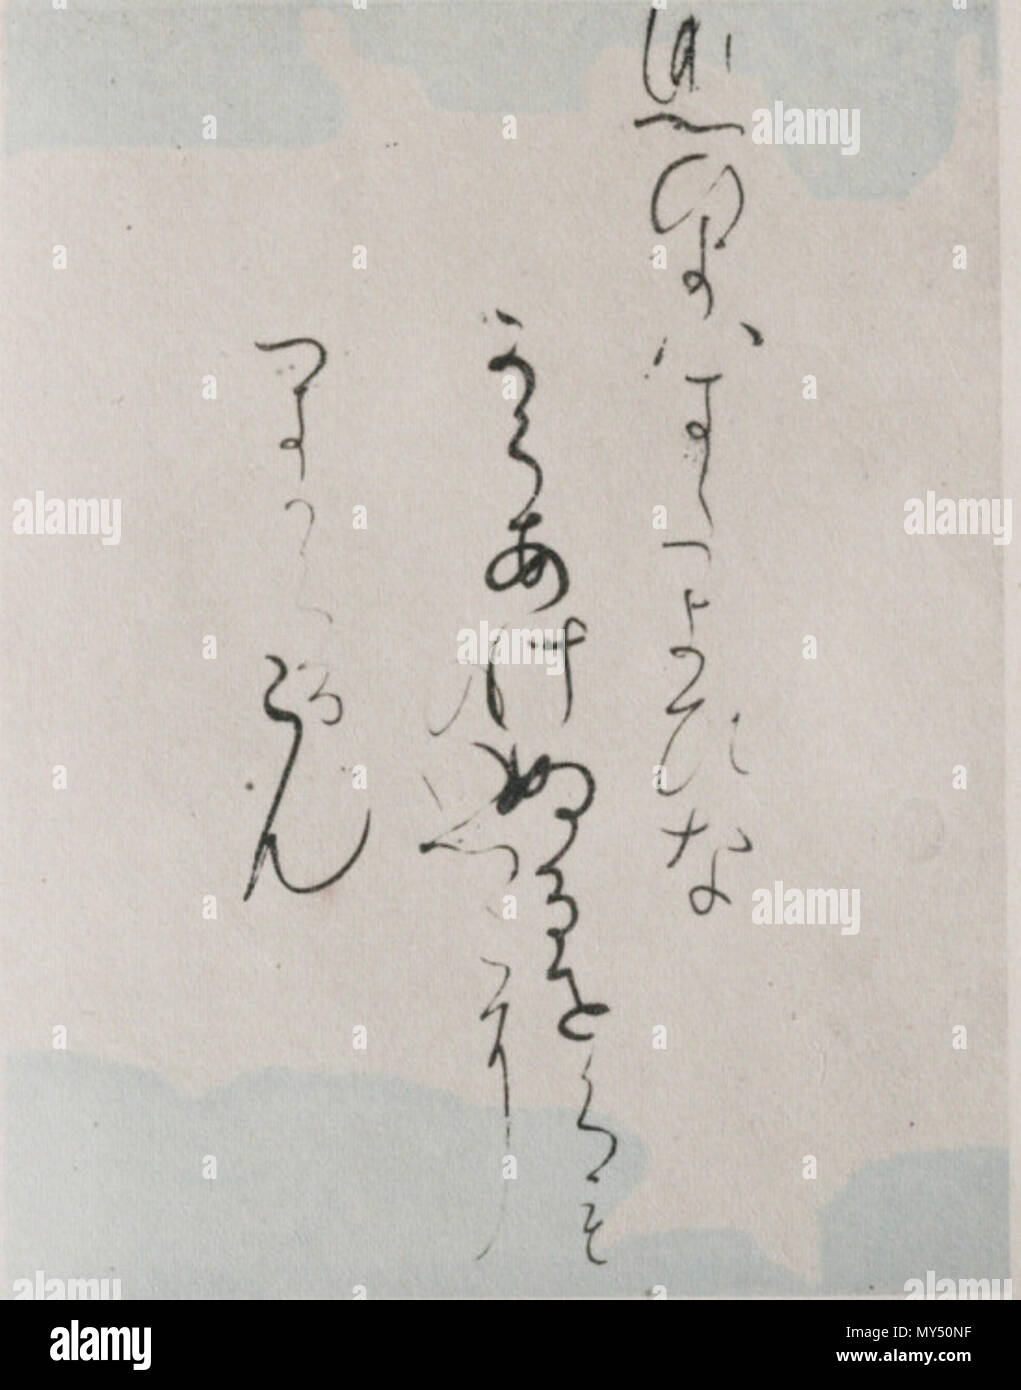 . English: MASU-SHIKISHI, a calligraphy of a poem by KIYOHARA-FUKAYABU(early 10th century). 13.7 cm height, 11.8cm wide. Ink on ornamented paper. 日本語: 升色紙 清原深養父集の一部 . 12th century. Anonymous 12th century, Japan 354 MASU SHIKISHI - Stock Image